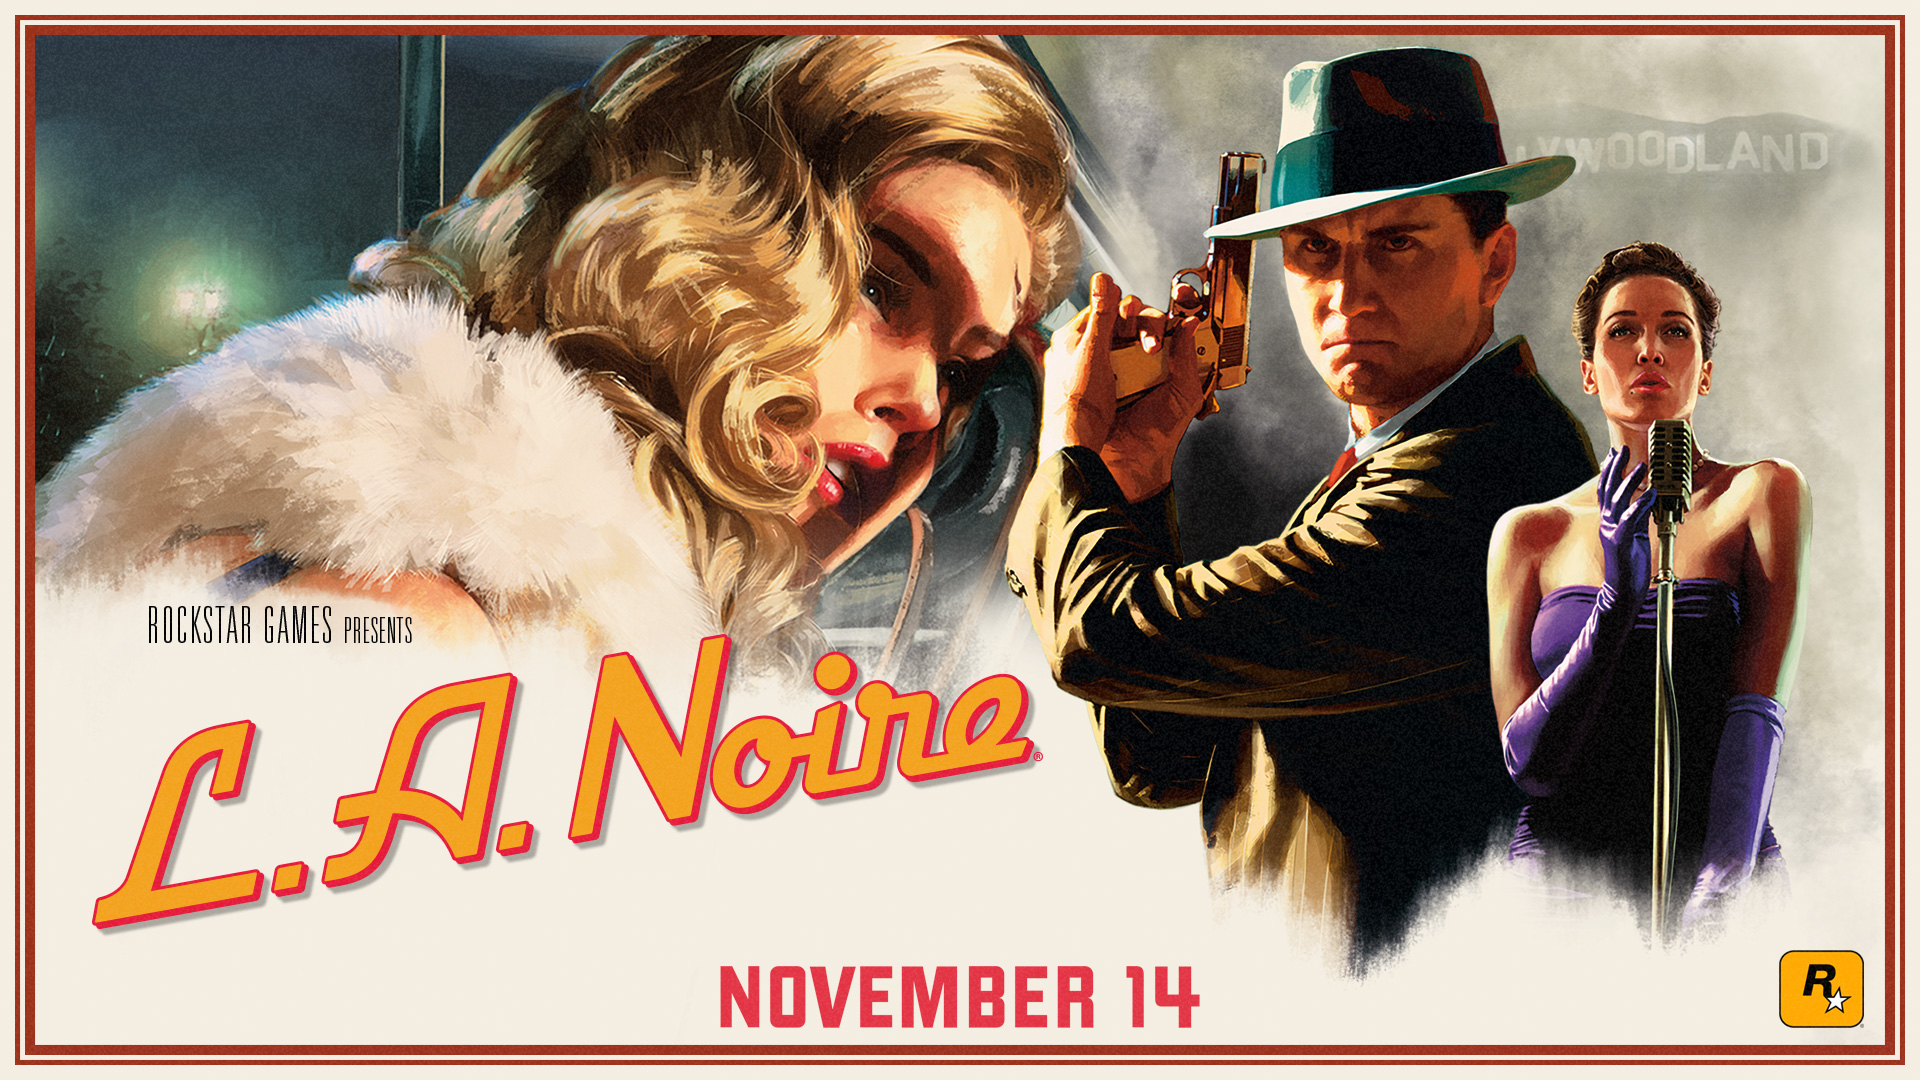 LA Noire - I knew this port was trouble the moment she walked into my Switch 9777b74c903fdcad28f05b165c65879548711642